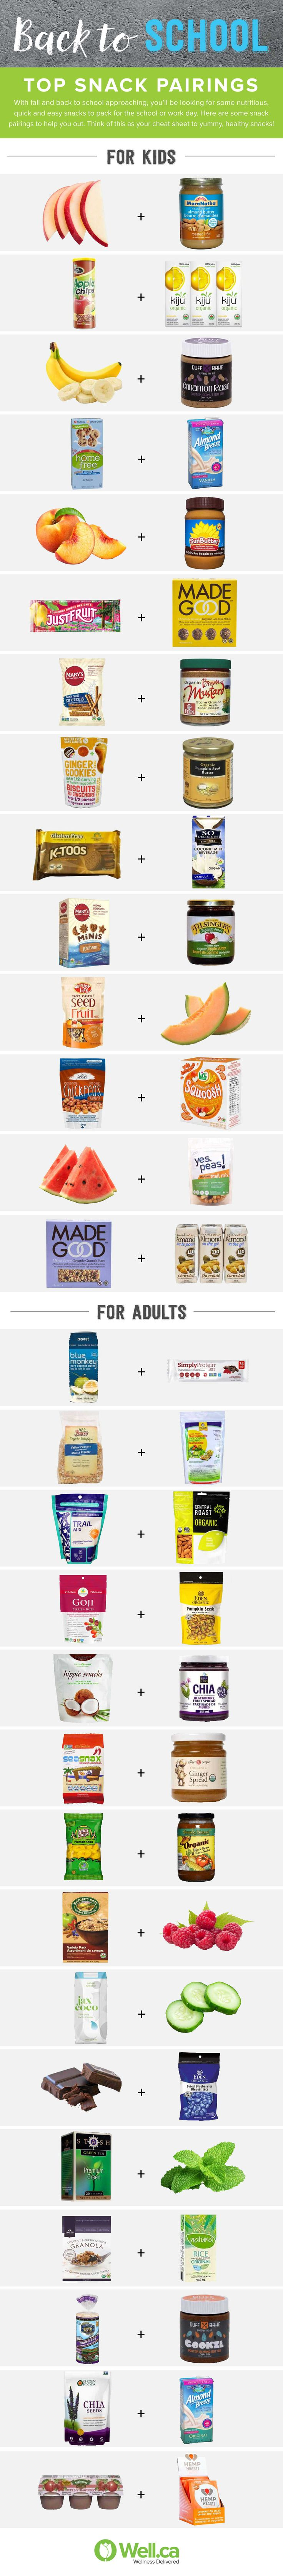 Top Snack Pairings for Fall - for Kids and Adults!@